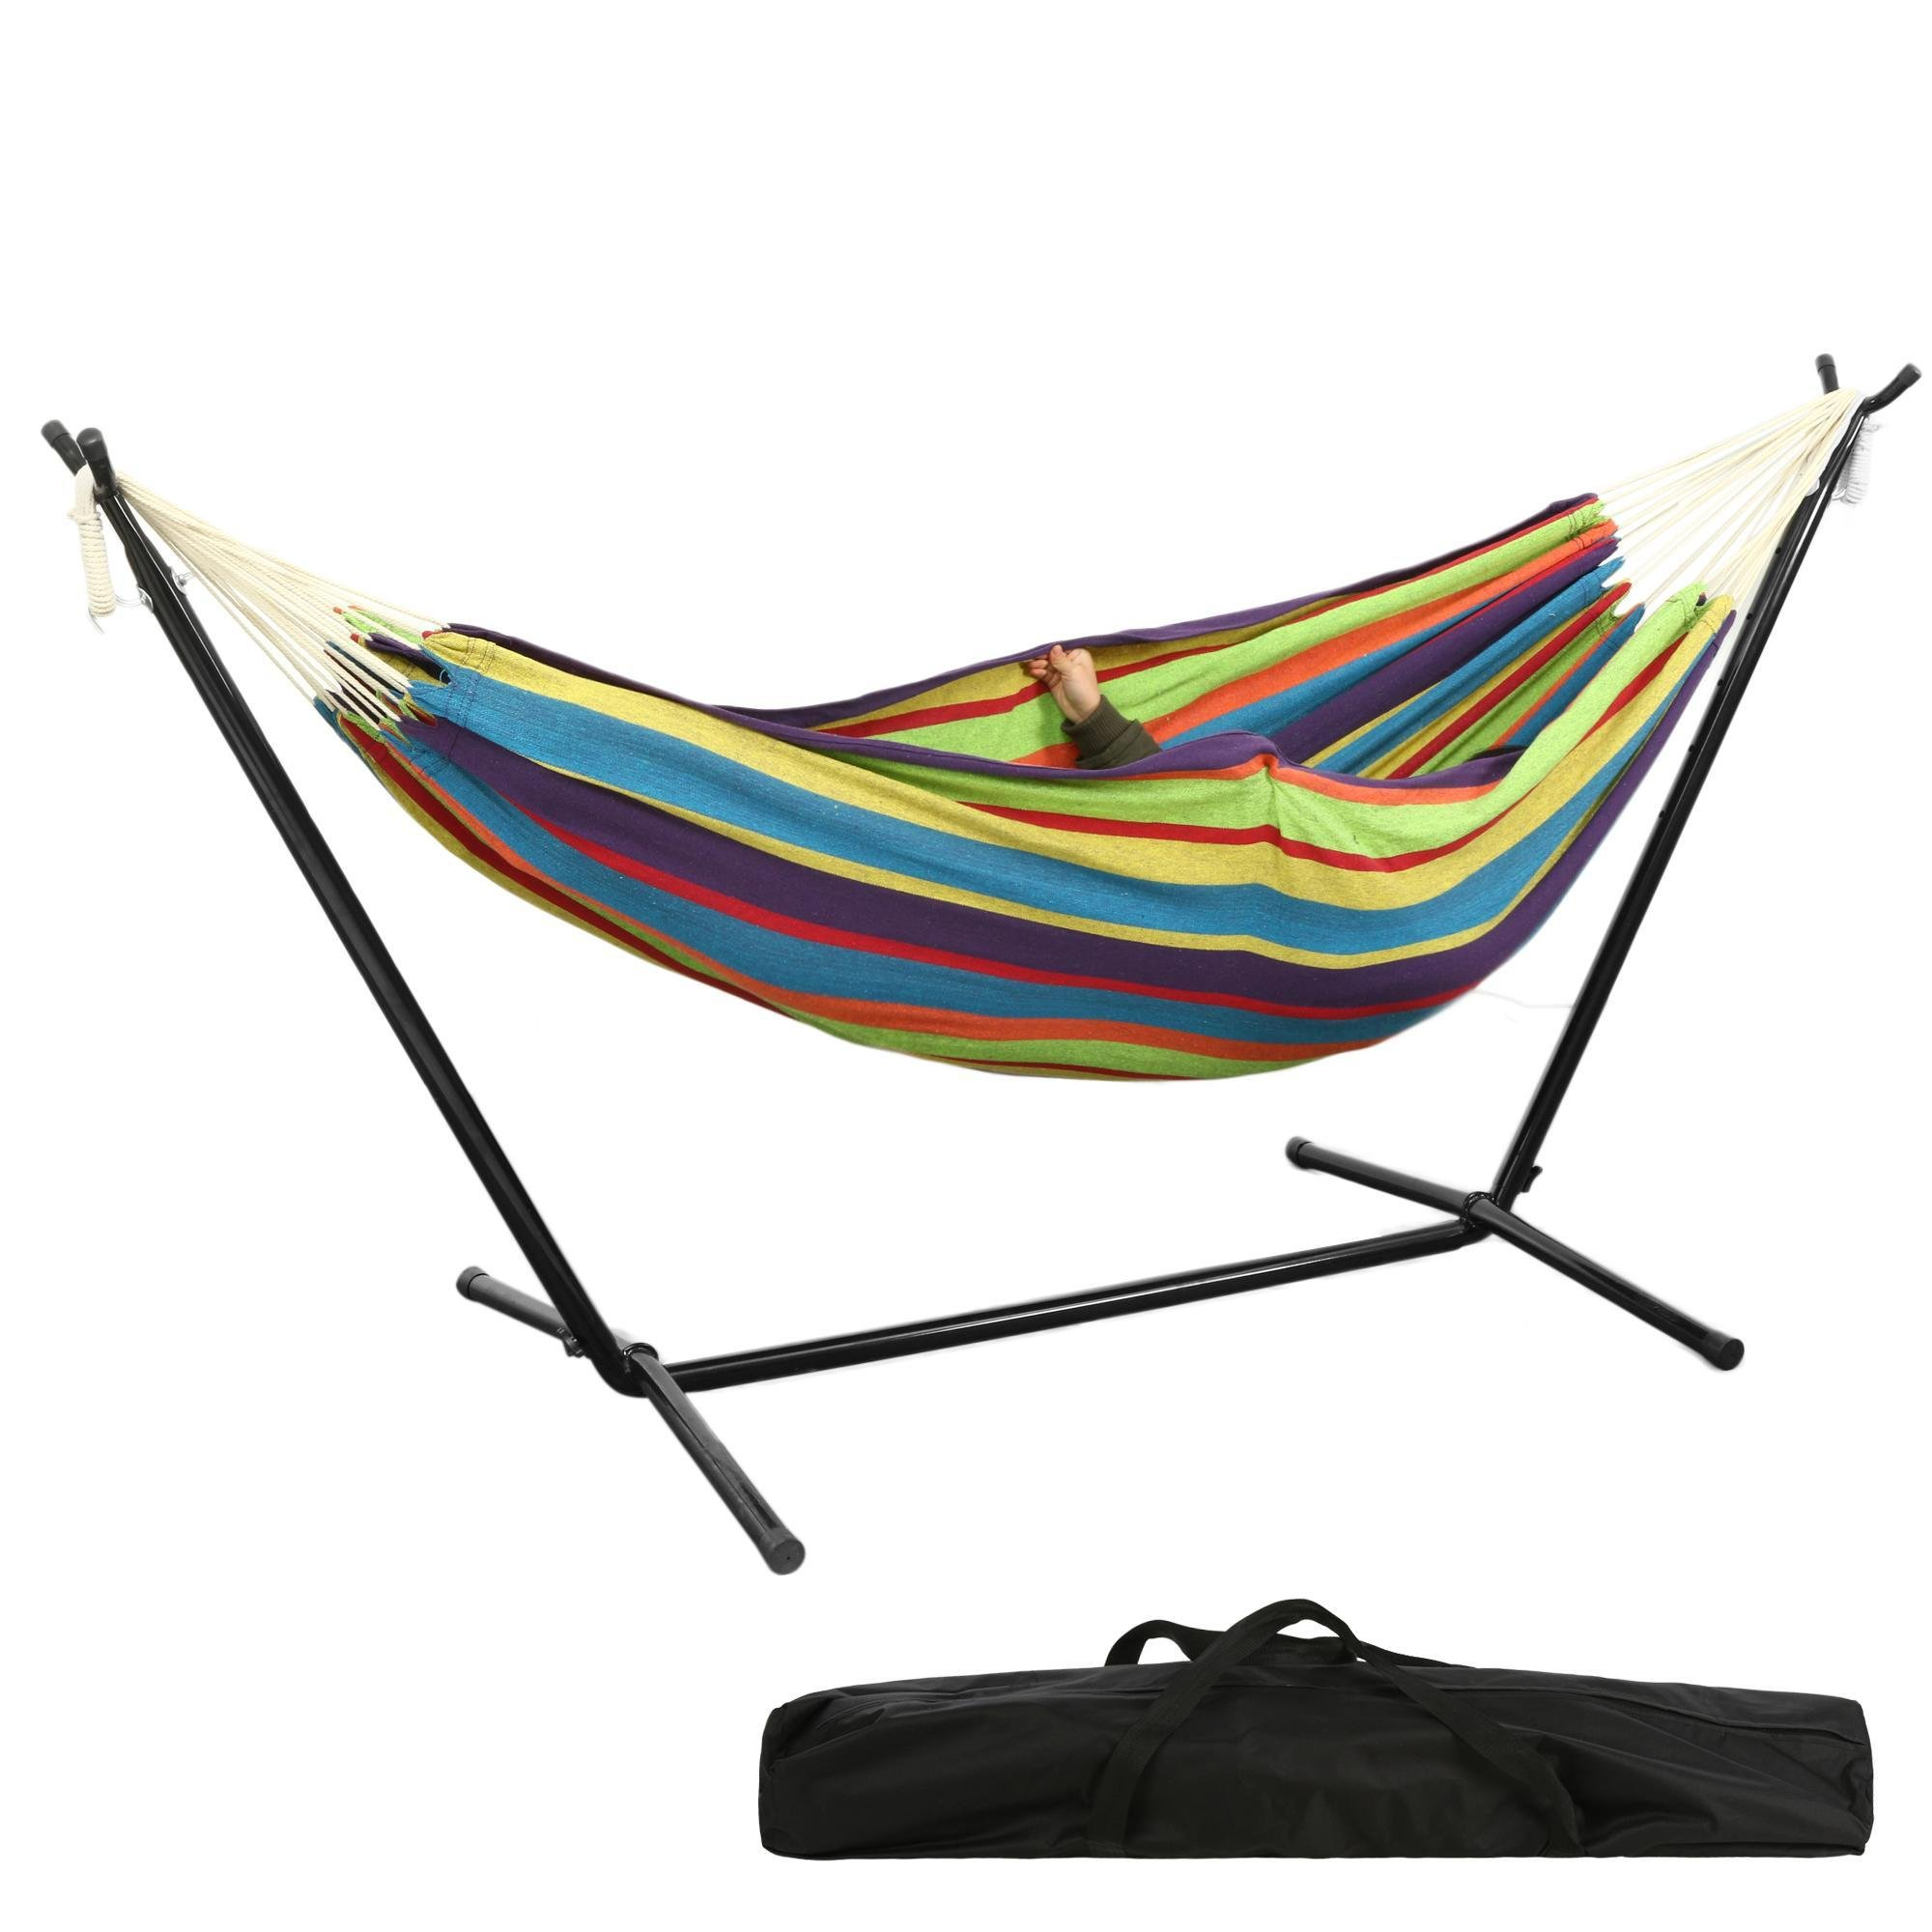 Hindom Double Hammock with Space Saving Steel Stand Outdoor & Indoor, Portable for Travel Vacation (Tropical)